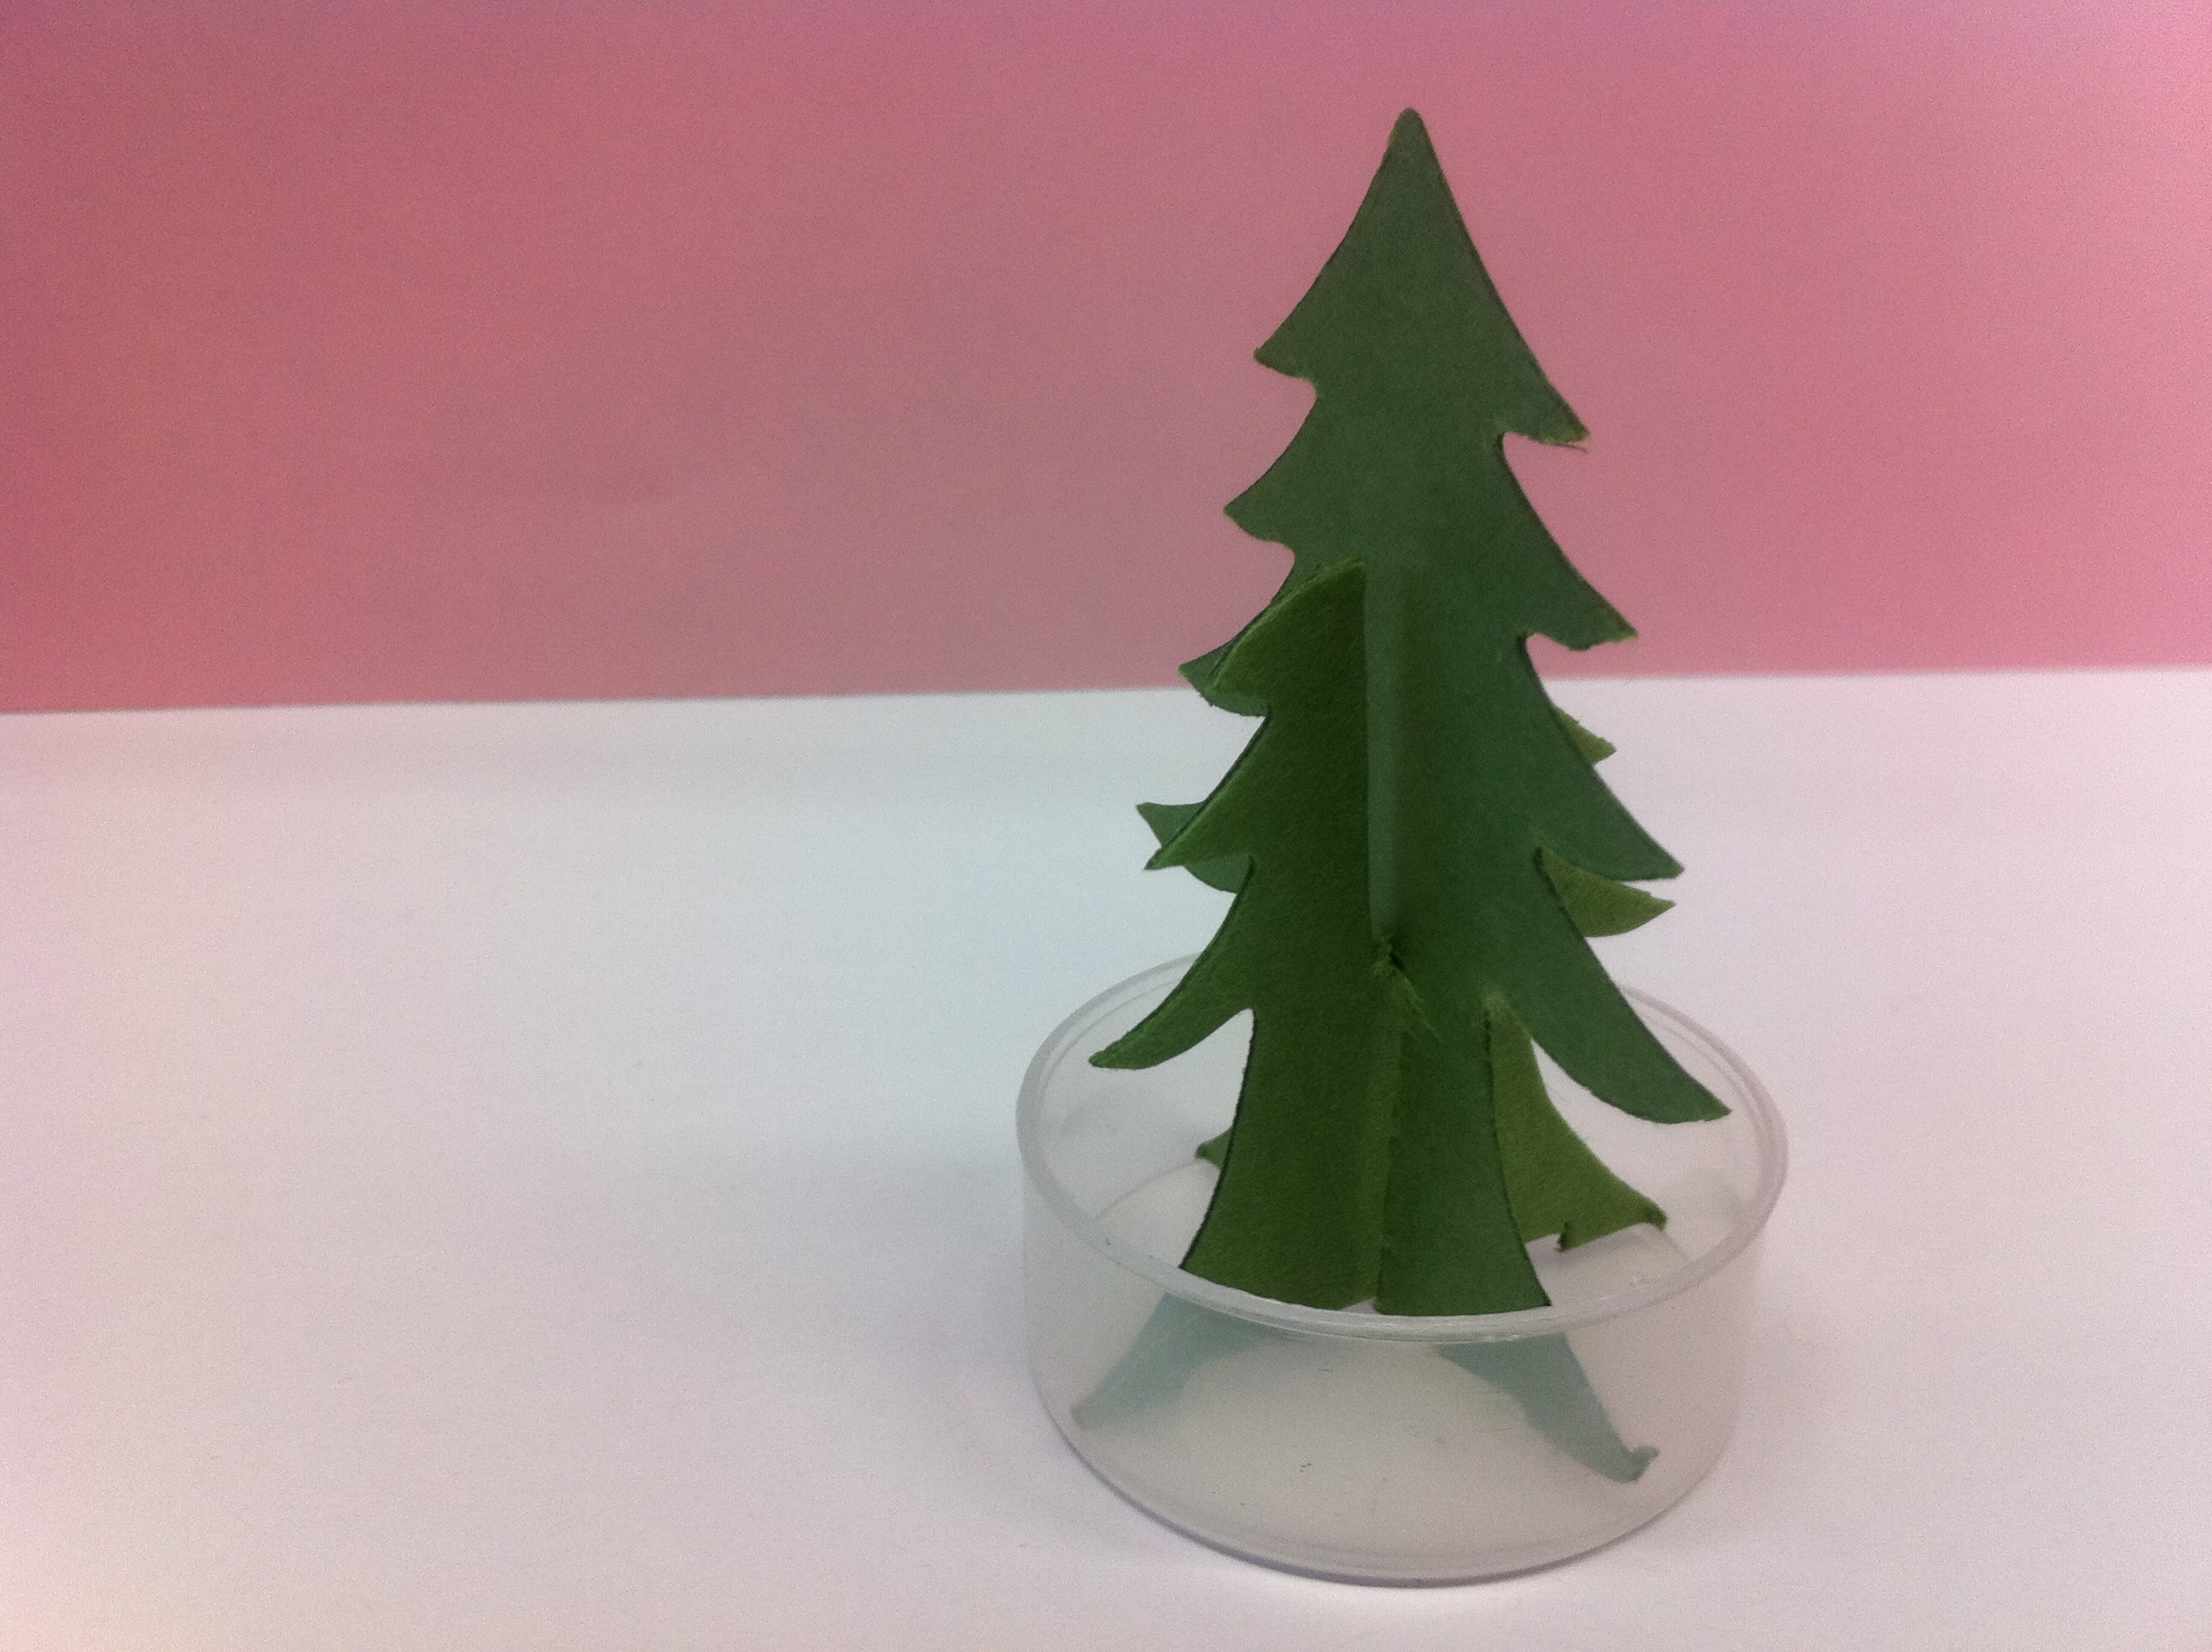 How Often To Water Christmas Tree.Chemistry World Blog Crystal Growing Christmas Trees